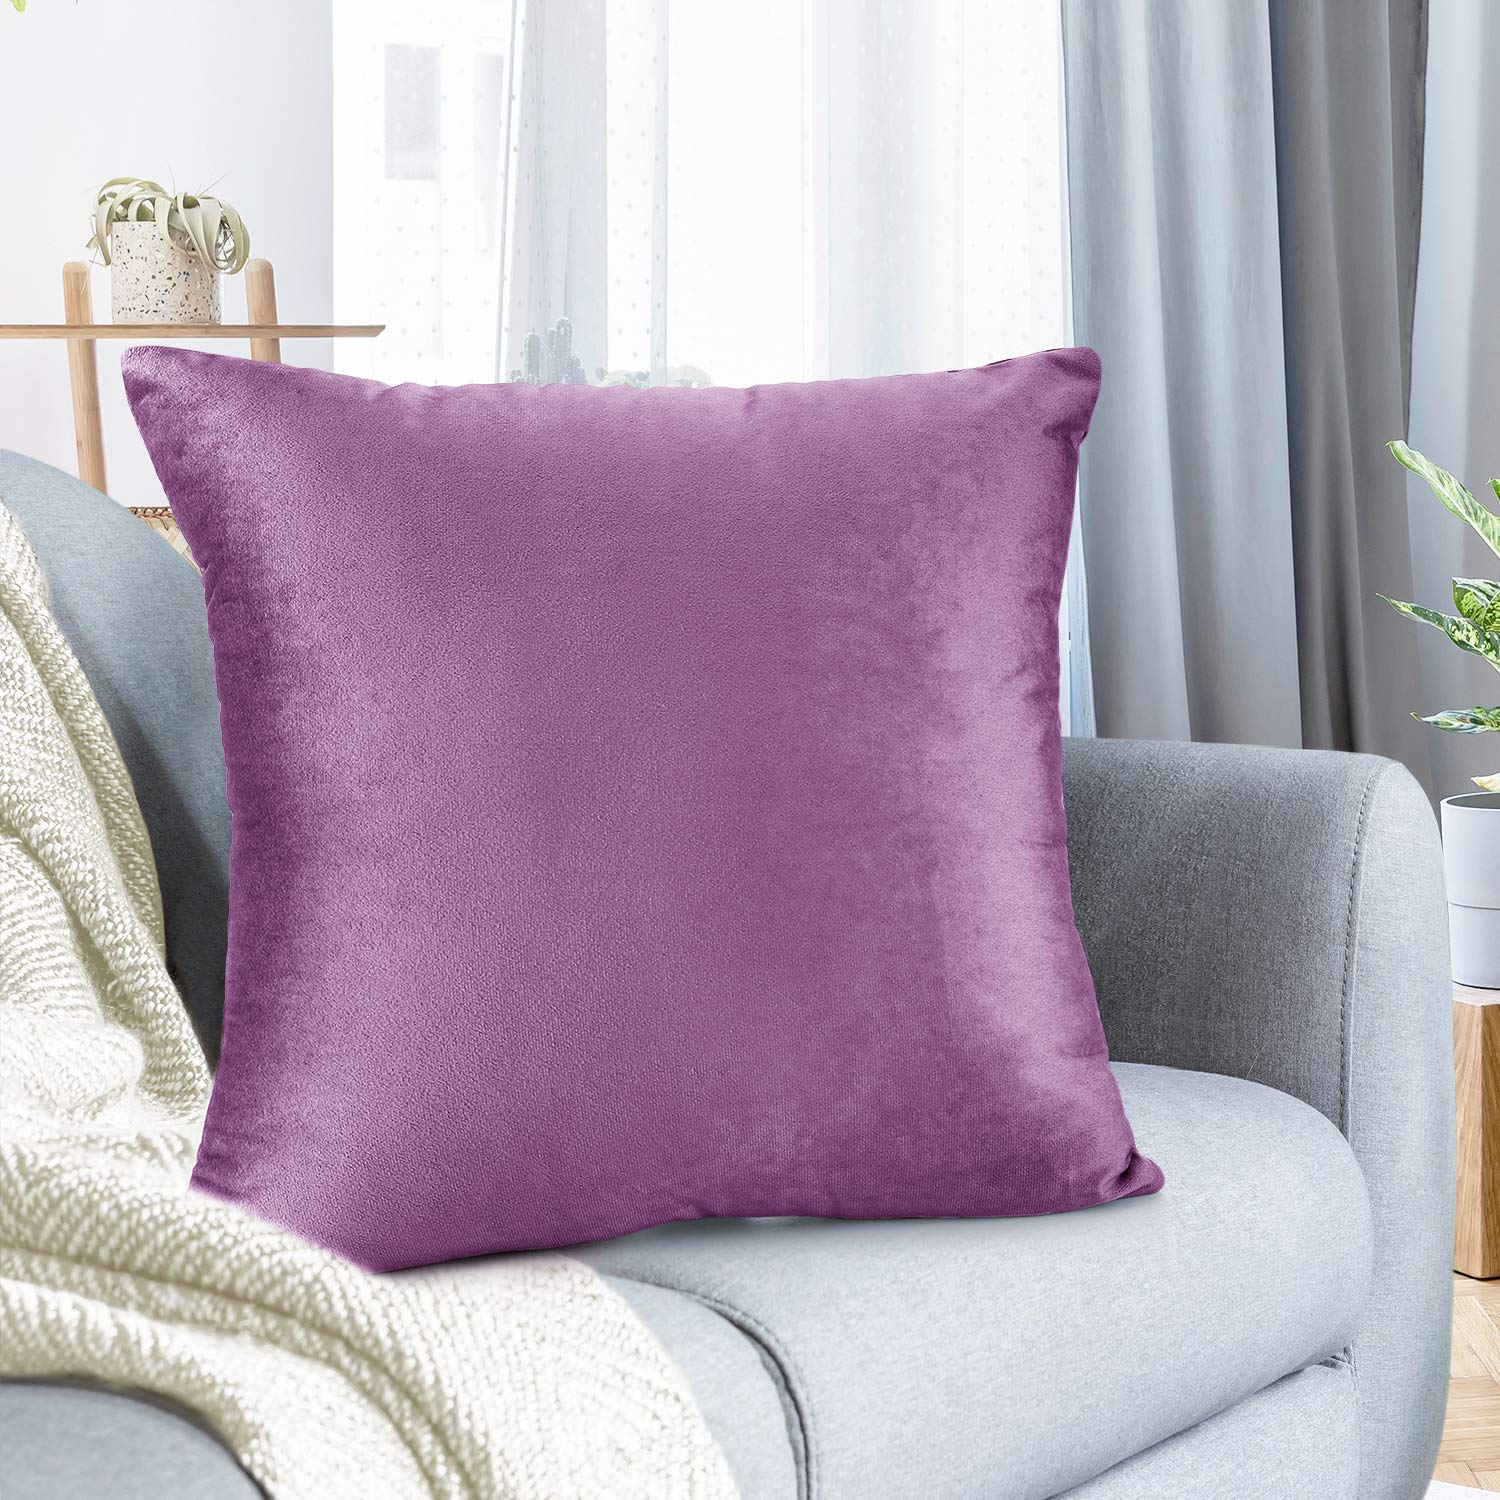 """Nestl Bedding Throw Pillow Cover 26"""" x 26"""" Soft Square Decorative Throw Pillow Covers Cozy Velvet Cushion Case for Sofa Couch Bedroom - Lavender Dream"""